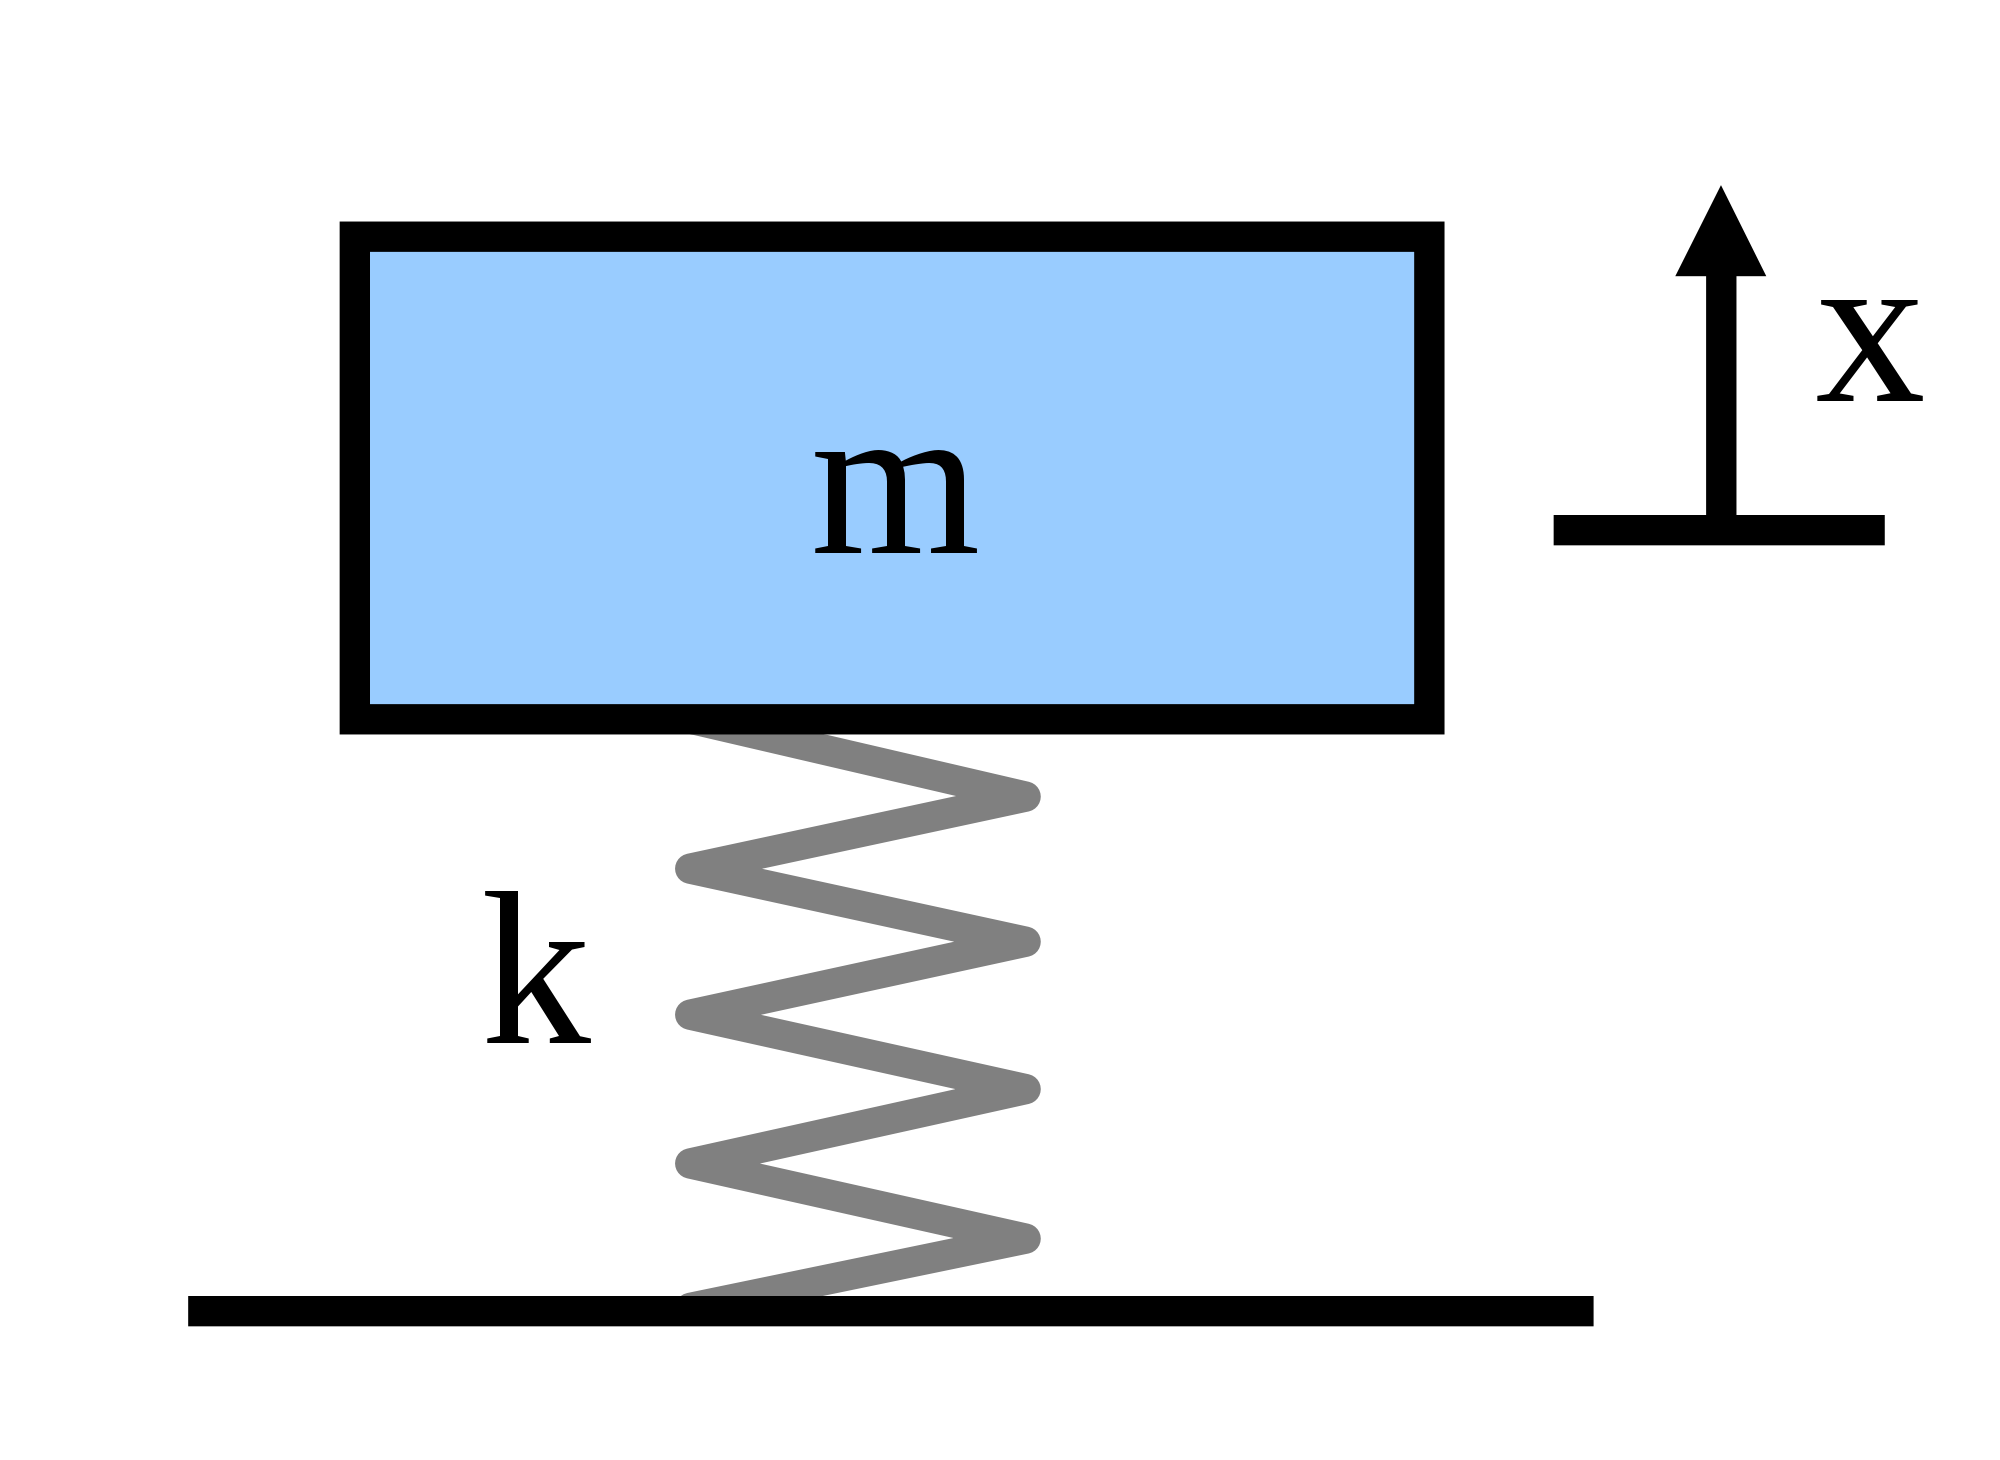 Figure 1: Mass-spring system.